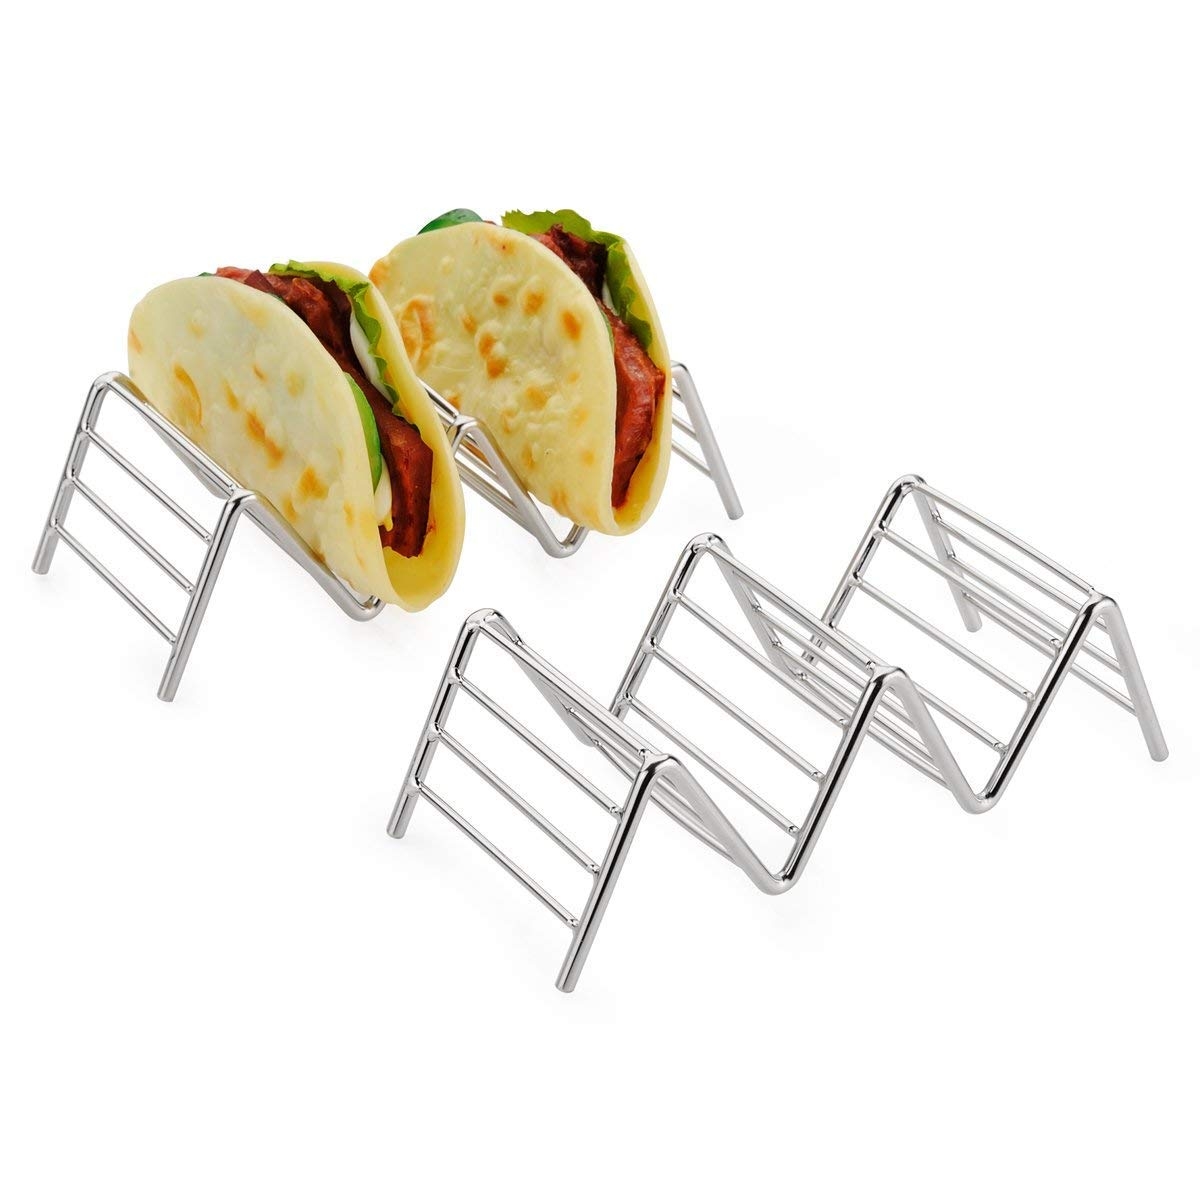 Taco Holders Set of 4, Stainless Steel Taco Stand Rack Holds, Oven Grill and Dishwasher Safe - Easy To Fill Taco Rack And Perfect To Keep Your Delicious Tacos